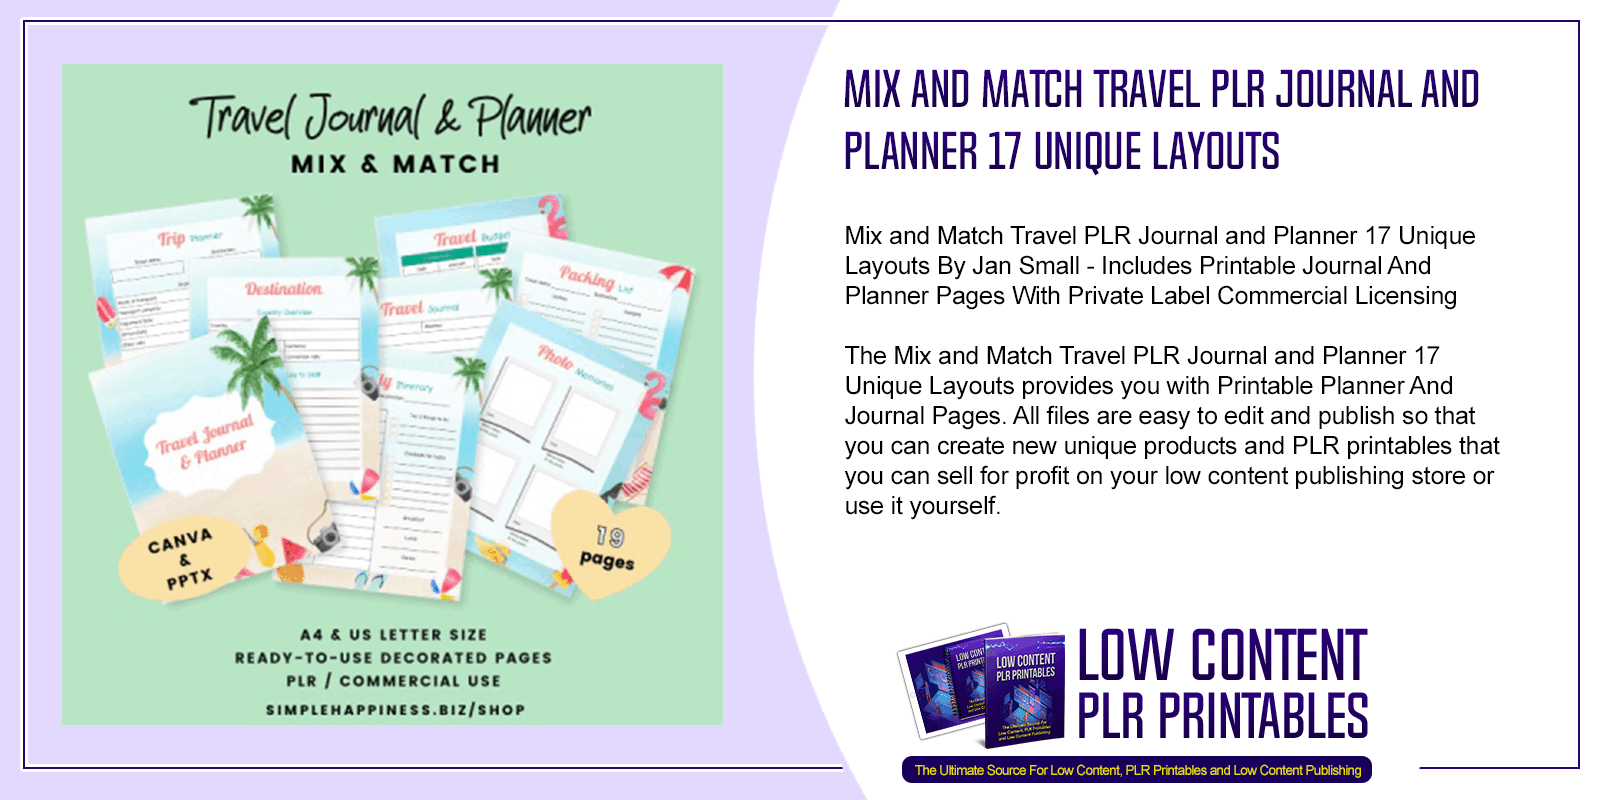 Mix and Match Travel PLR Journal and Planner 17 Unique Layouts